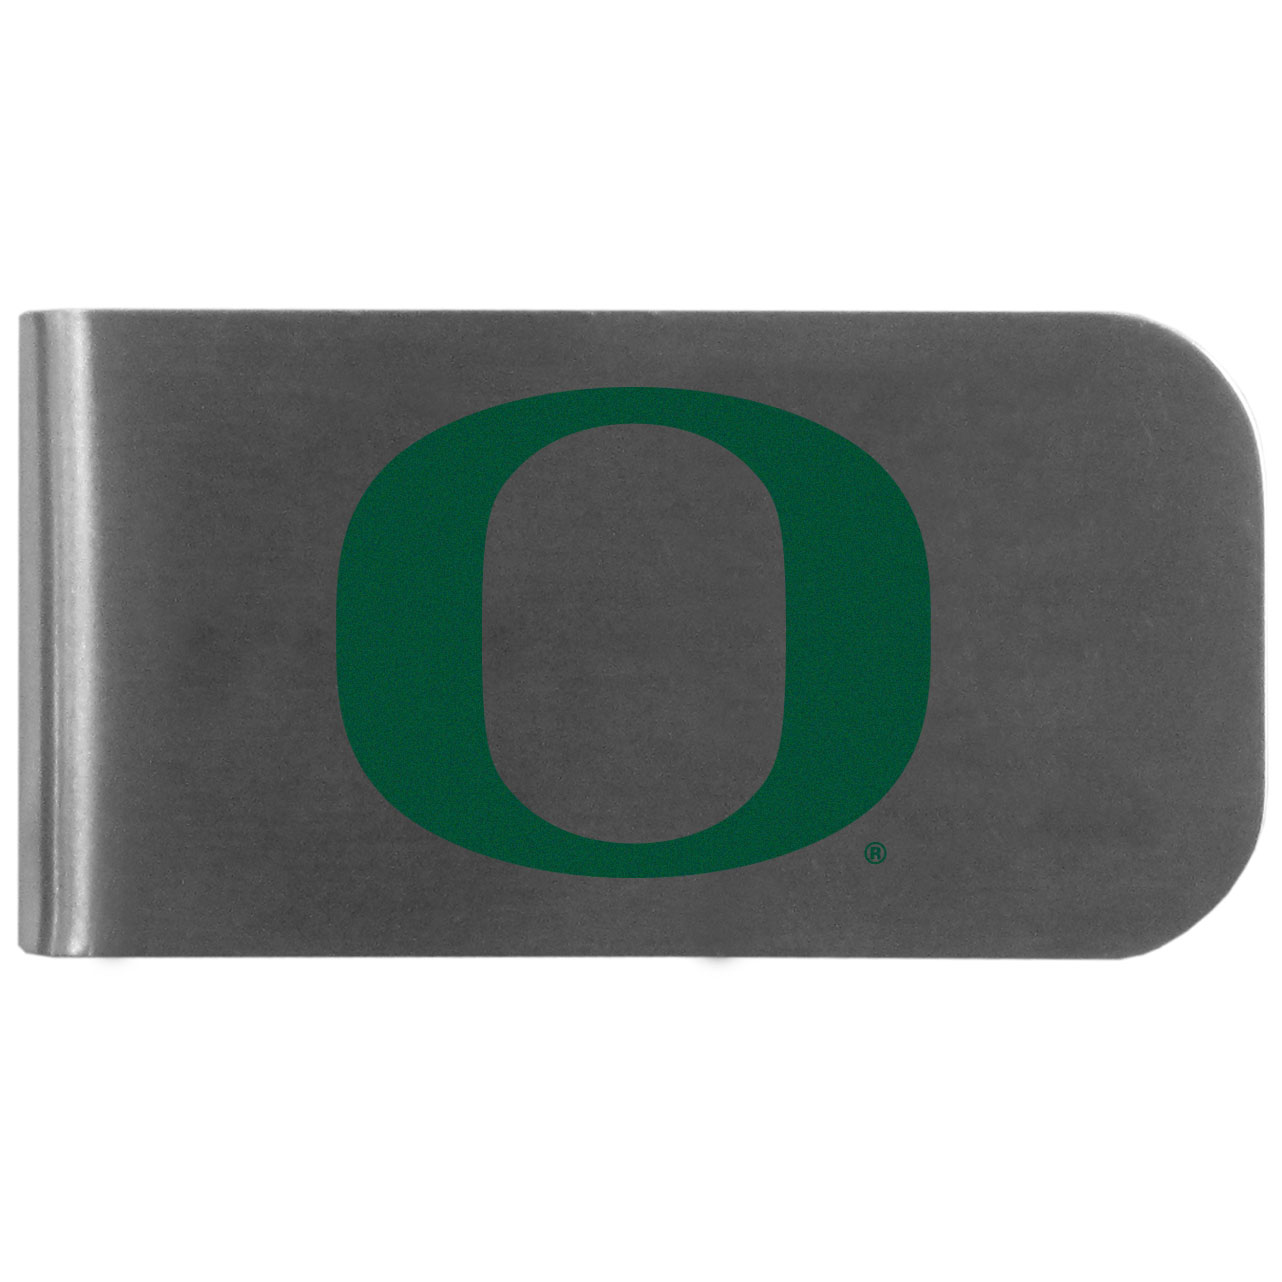 Oregon Ducks Logo Bottle Opener Money Clip - This unique money clip features a classic, brushed-metal finish with a handy bottle opener feature on the back. The clip has the Oregon Ducks logo expertly printed on the front of the clip.